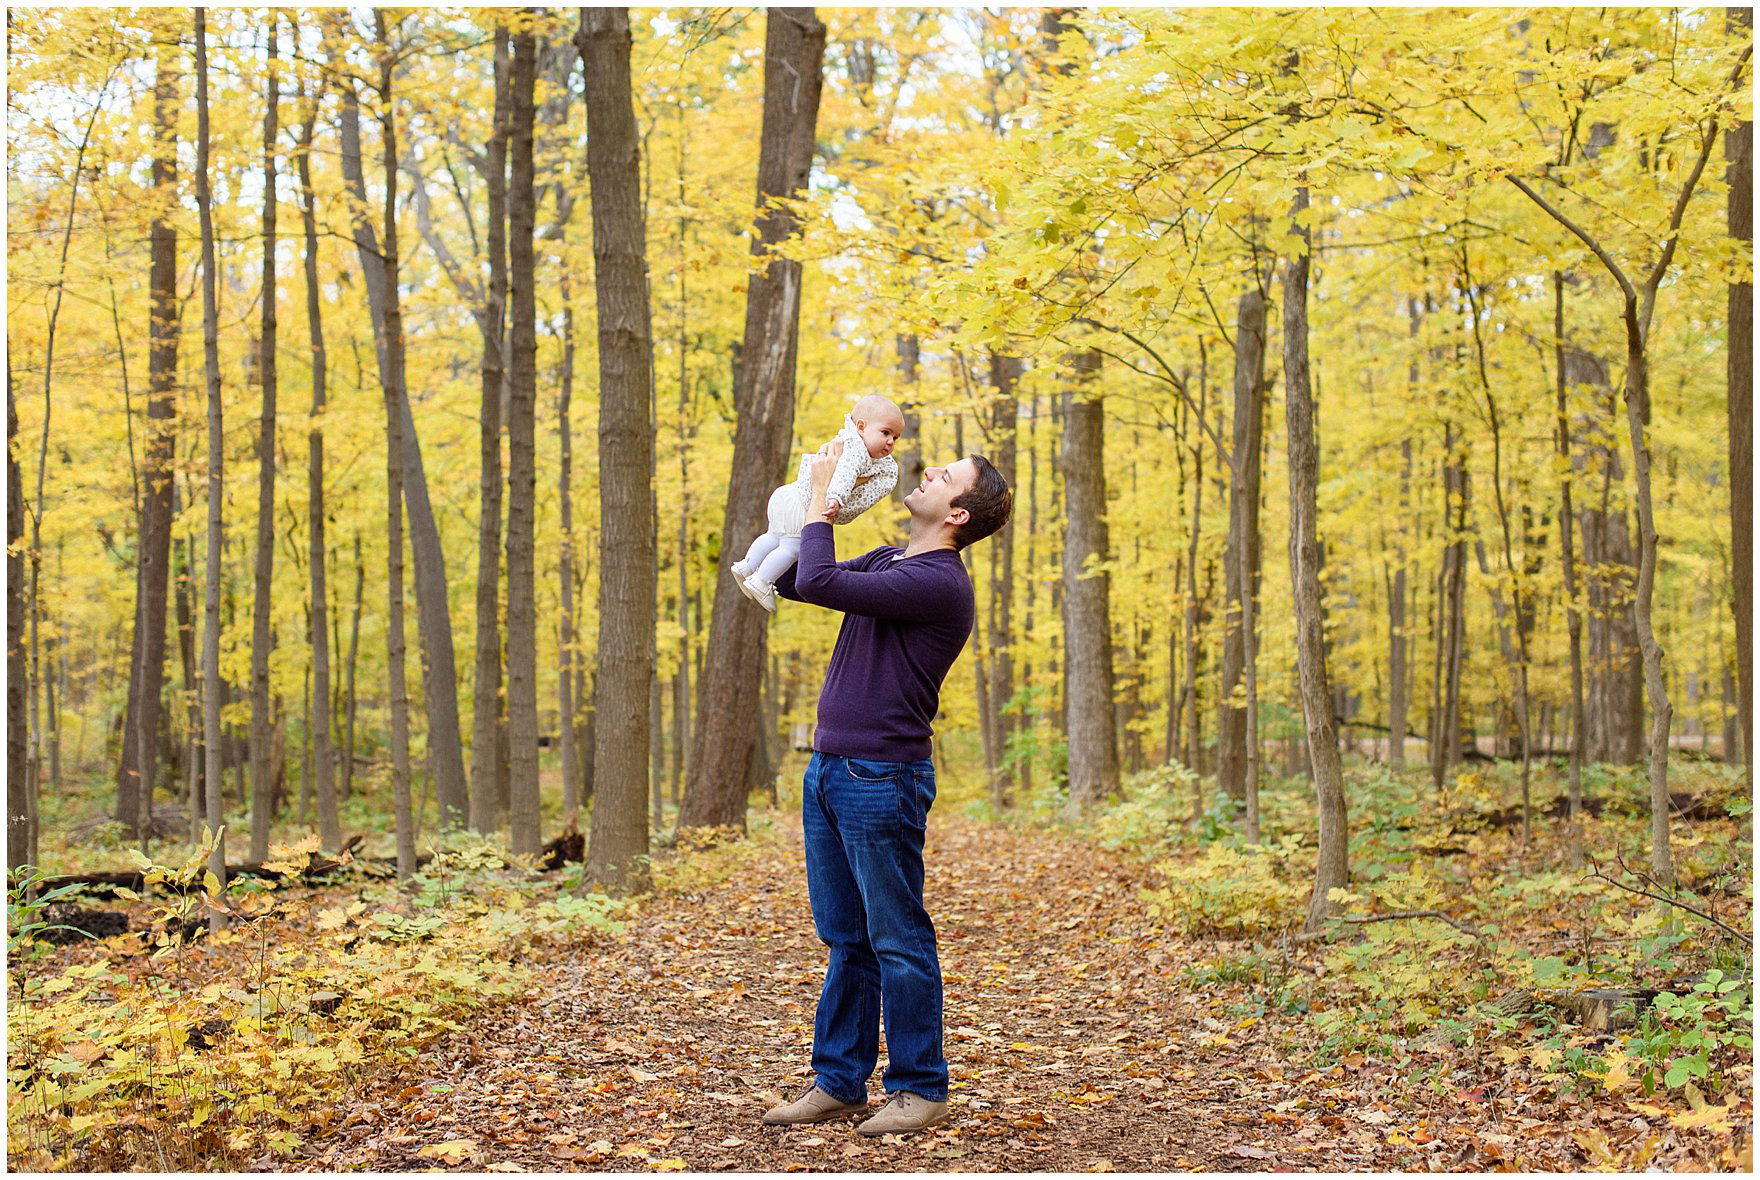 A dad plays with his baby daughter against a backdrop of golden leaves during a Morton Arboretum fall family session.